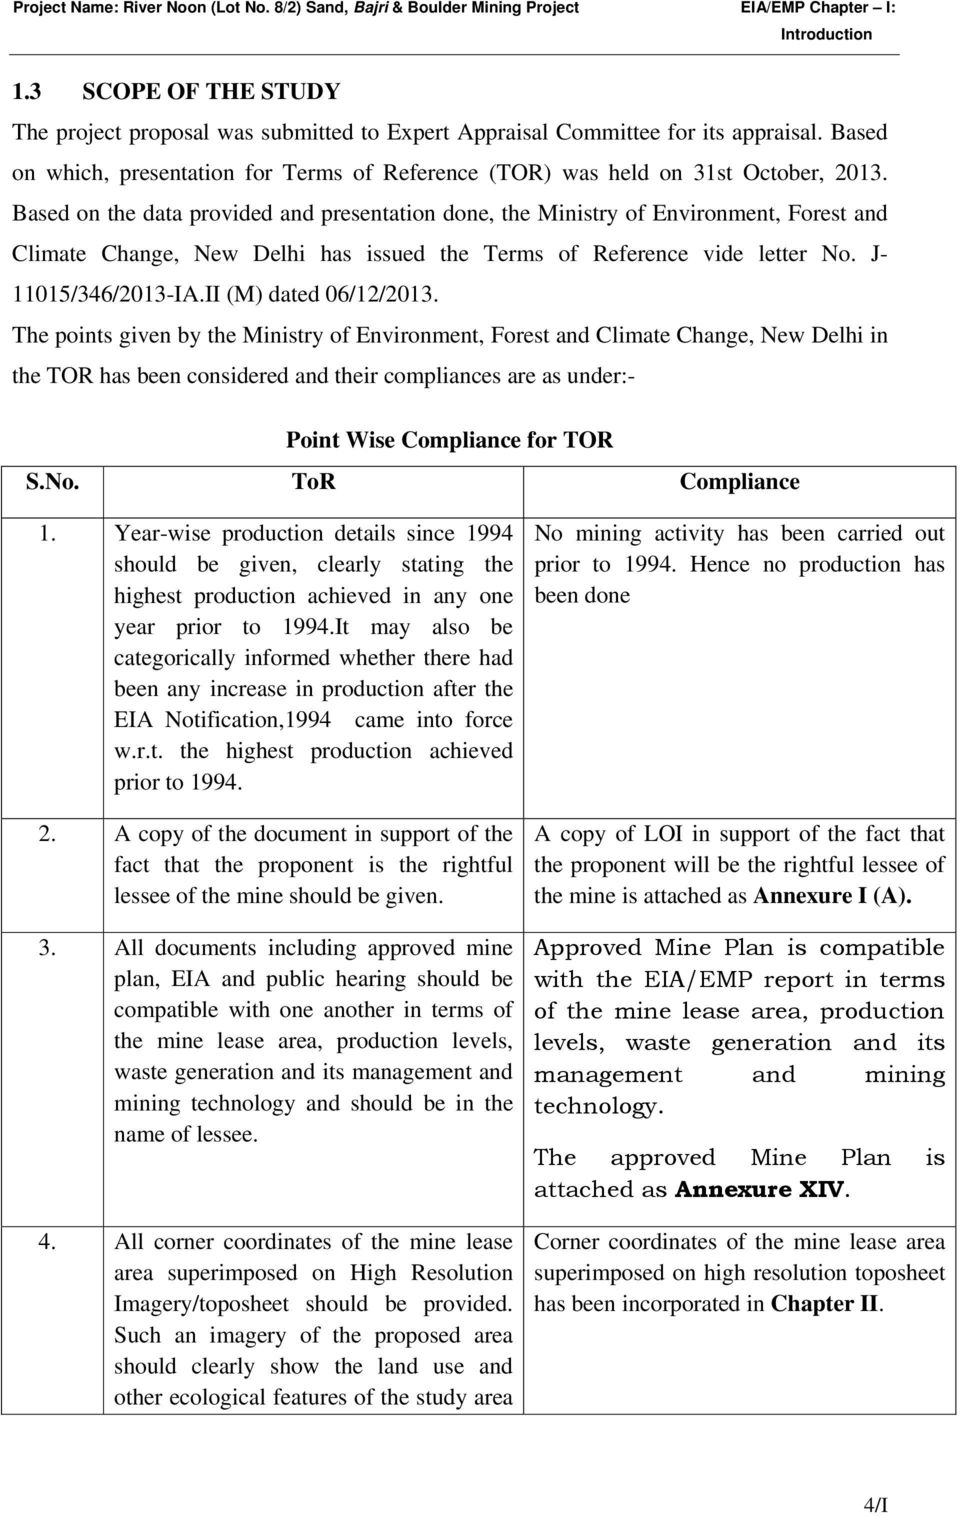 Based on the data provided and presentation done, the Ministry of Environment, Forest and Climate Change, New Delhi has issued the Terms of Reference vide letter No. J- 11015/346/2013-IA.